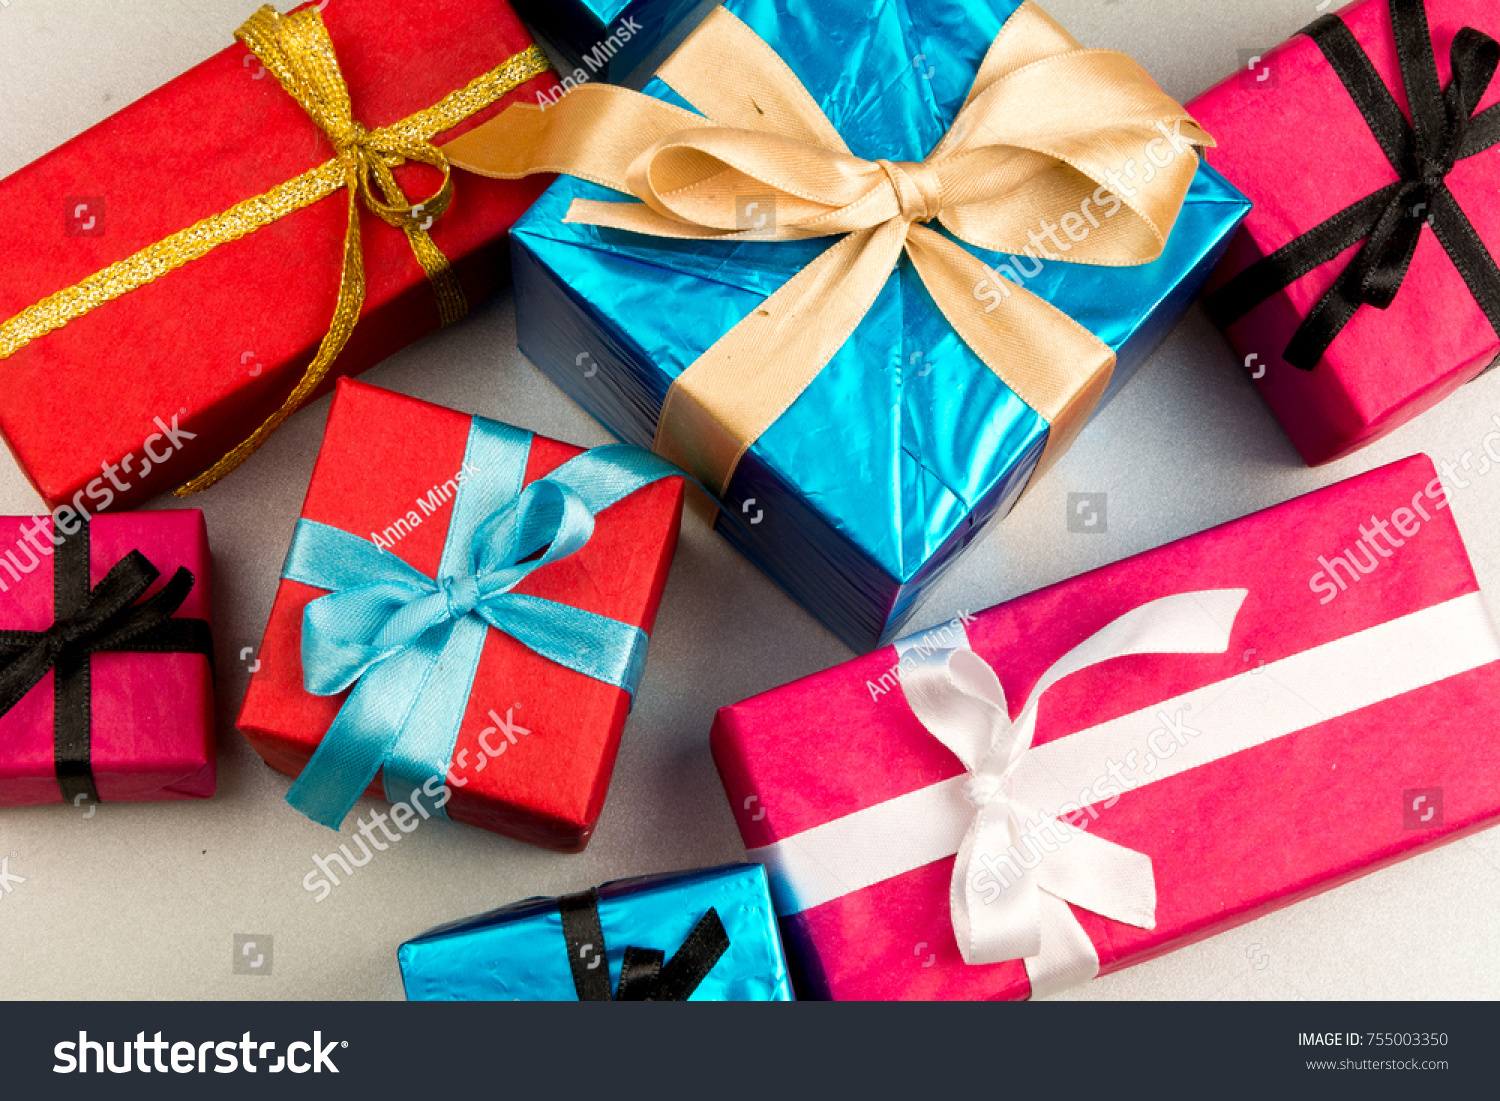 Big pile colorful wrapped gift boxes stock photo 100 legal big pile of colorful wrapped gift boxes isolated on white background mountain gifts beautiful negle Image collections